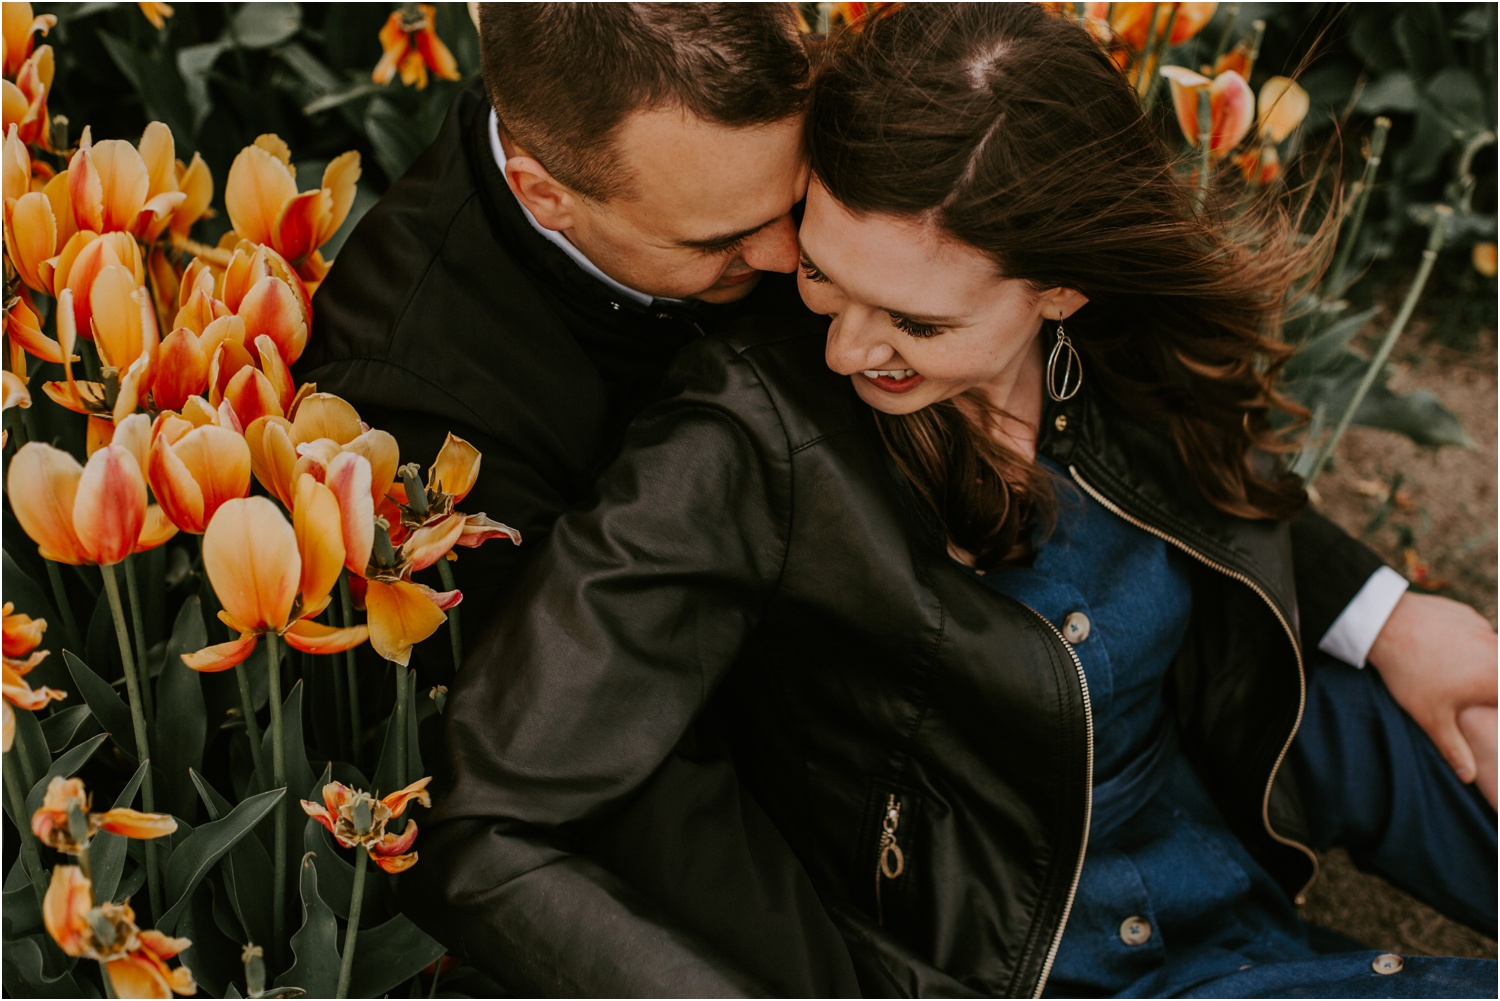 Abbotsford Tulip Fesitval,Courtney Jess Photography,East Kootenay Photographer,Fernie Photographer,Fernie Wedding Whotographer,Kimberley BC Photographer,Kimberley BC Weddings,Tulip Engagement Session,